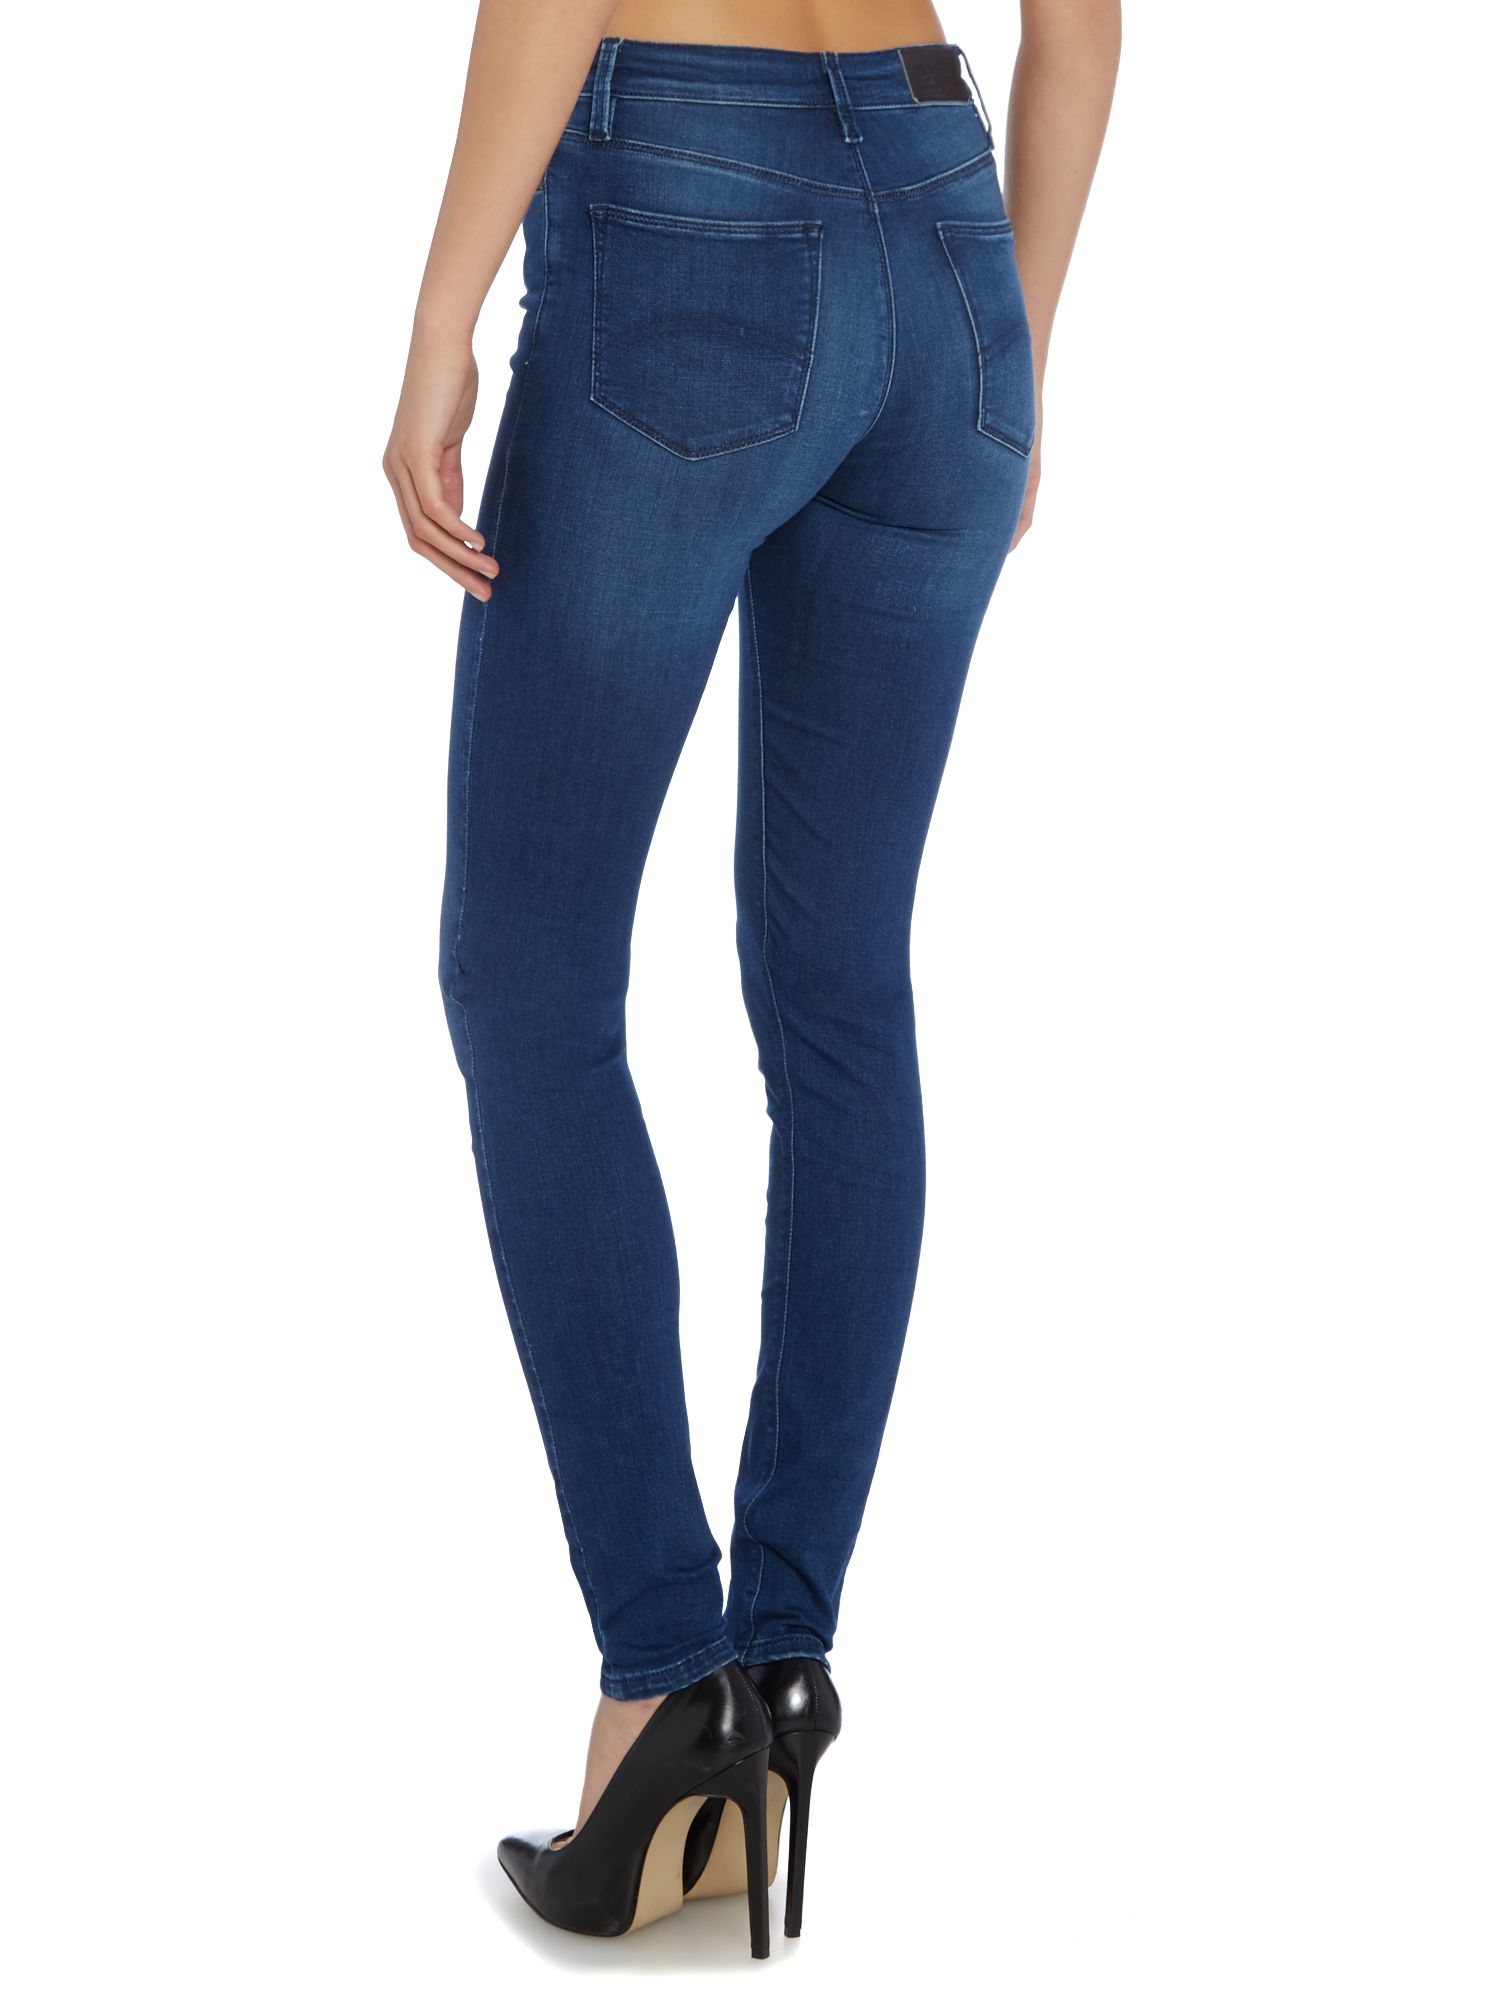 tommy hilfiger santana skinny fit jeans in blue lyst. Black Bedroom Furniture Sets. Home Design Ideas